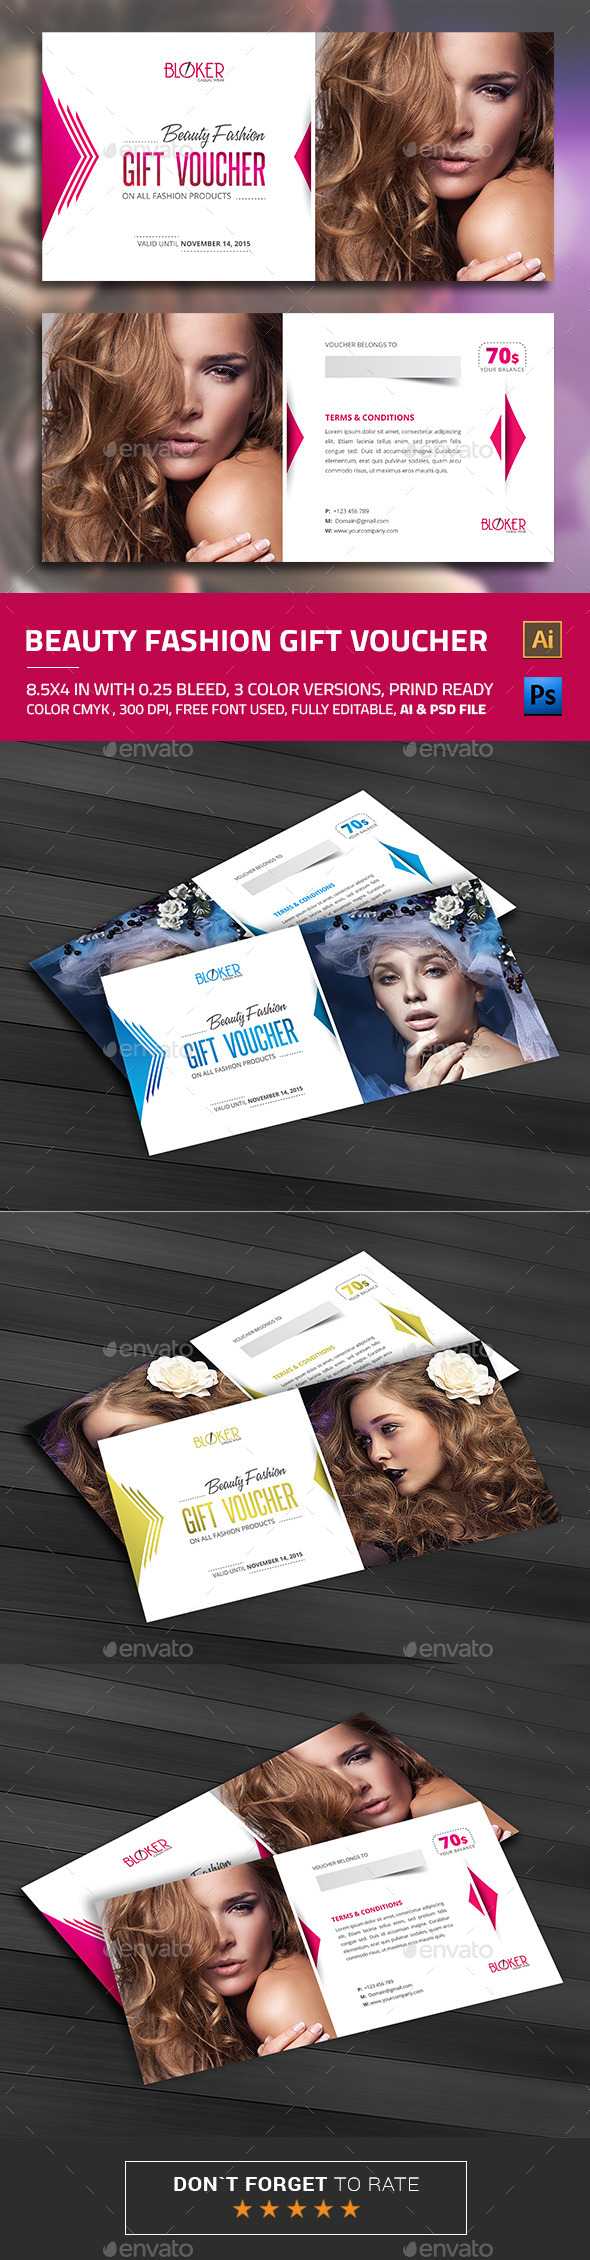 Beauty Fashion Gift Voucher - Loyalty Cards Cards & Invites